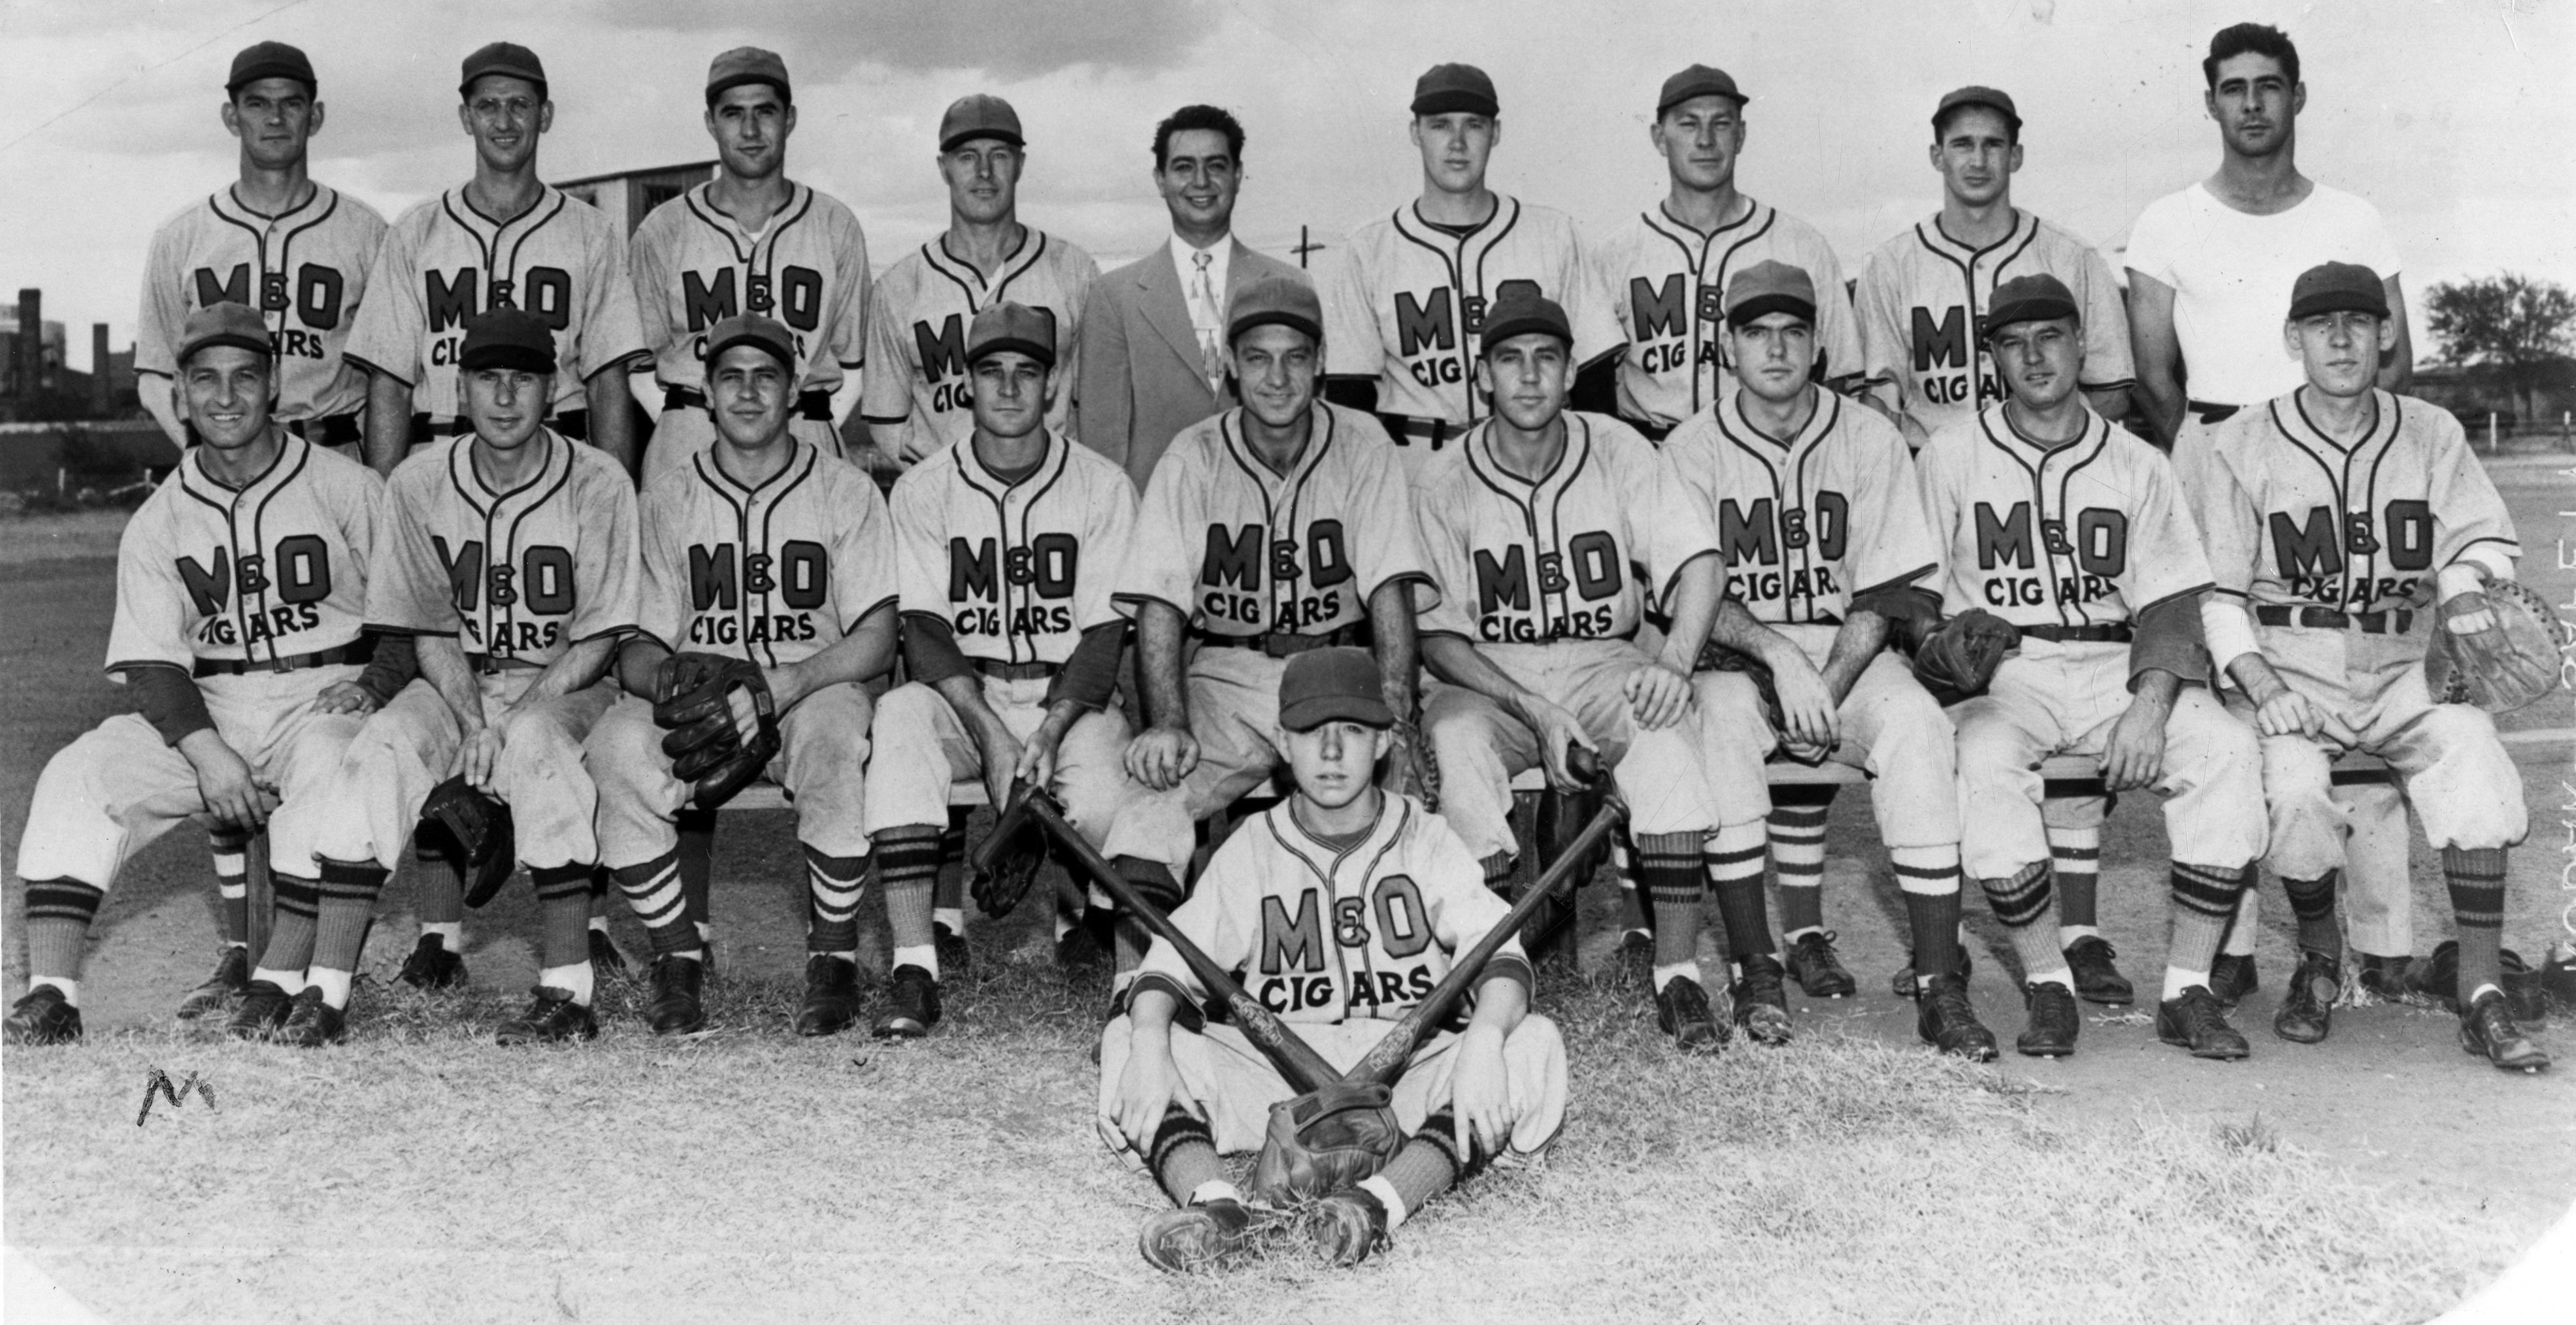 1946 Colorado champions in the Victory League, M&O Cigars baseball team, Denver